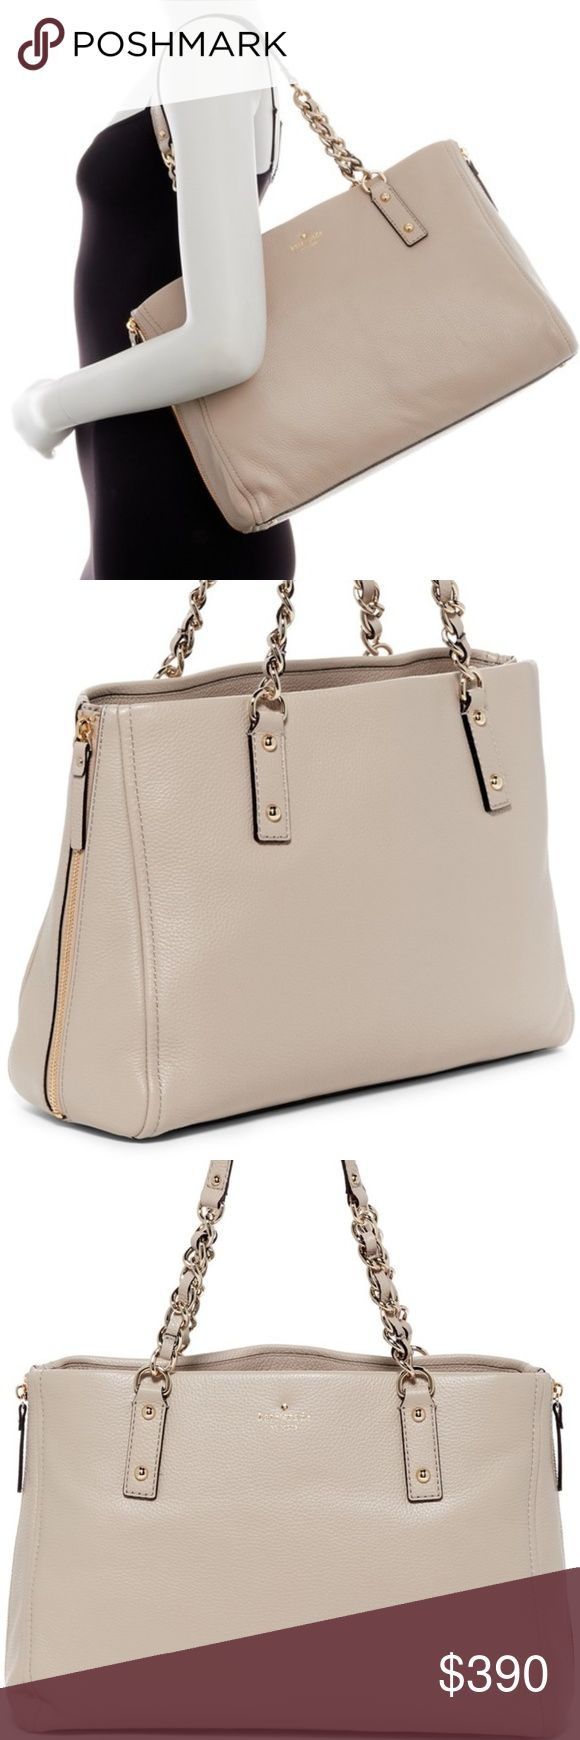 """♠️ Kate Spade ♠️ Cobble Hill Andee Leather Satchel NWT - Authentic and Brand New Kate Spade Cobble Hill Andee Satchel in beige Leather. Color is called """"clock tower"""" which is a kind of beige/grey. Retail $428 + Tax.   * Dual top chain accents handles  * Two side zippers for expansion  * Magnetic snap closure  * Interior: black and white stripe lining; zip wall pocket and two media pockets * Protective metal feet * Dimensions: 10""""H x 14.75"""" W x 4.25"""" D. Approx. 9"""" handle drop. kate spade Bags…"""